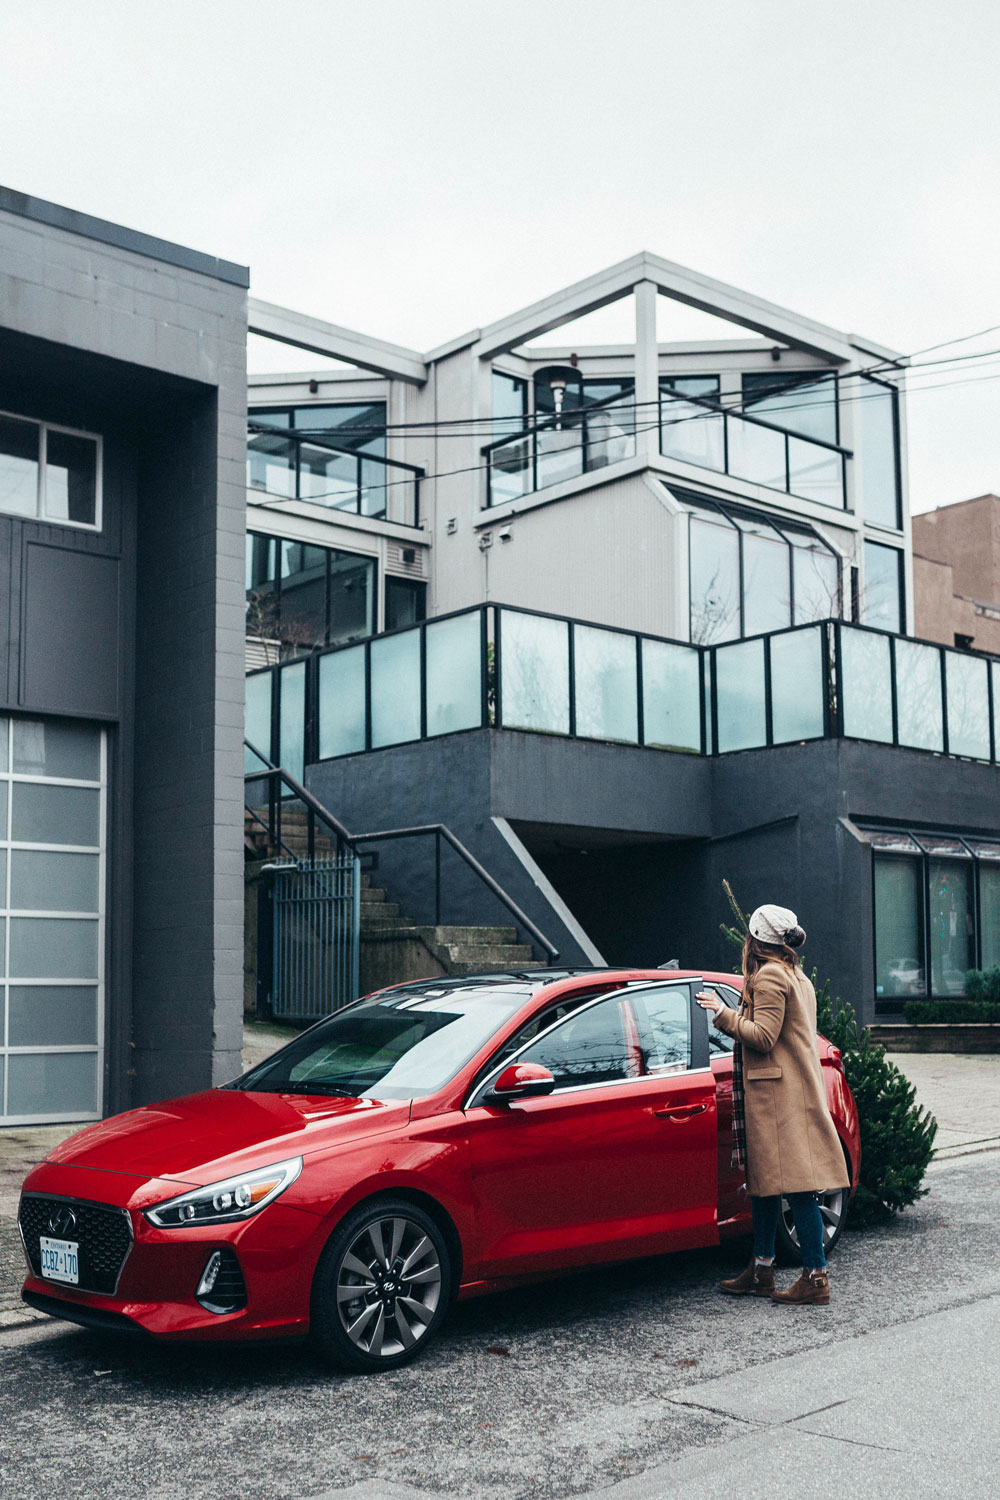 Hyundai elantra review by To Vogue or Bust